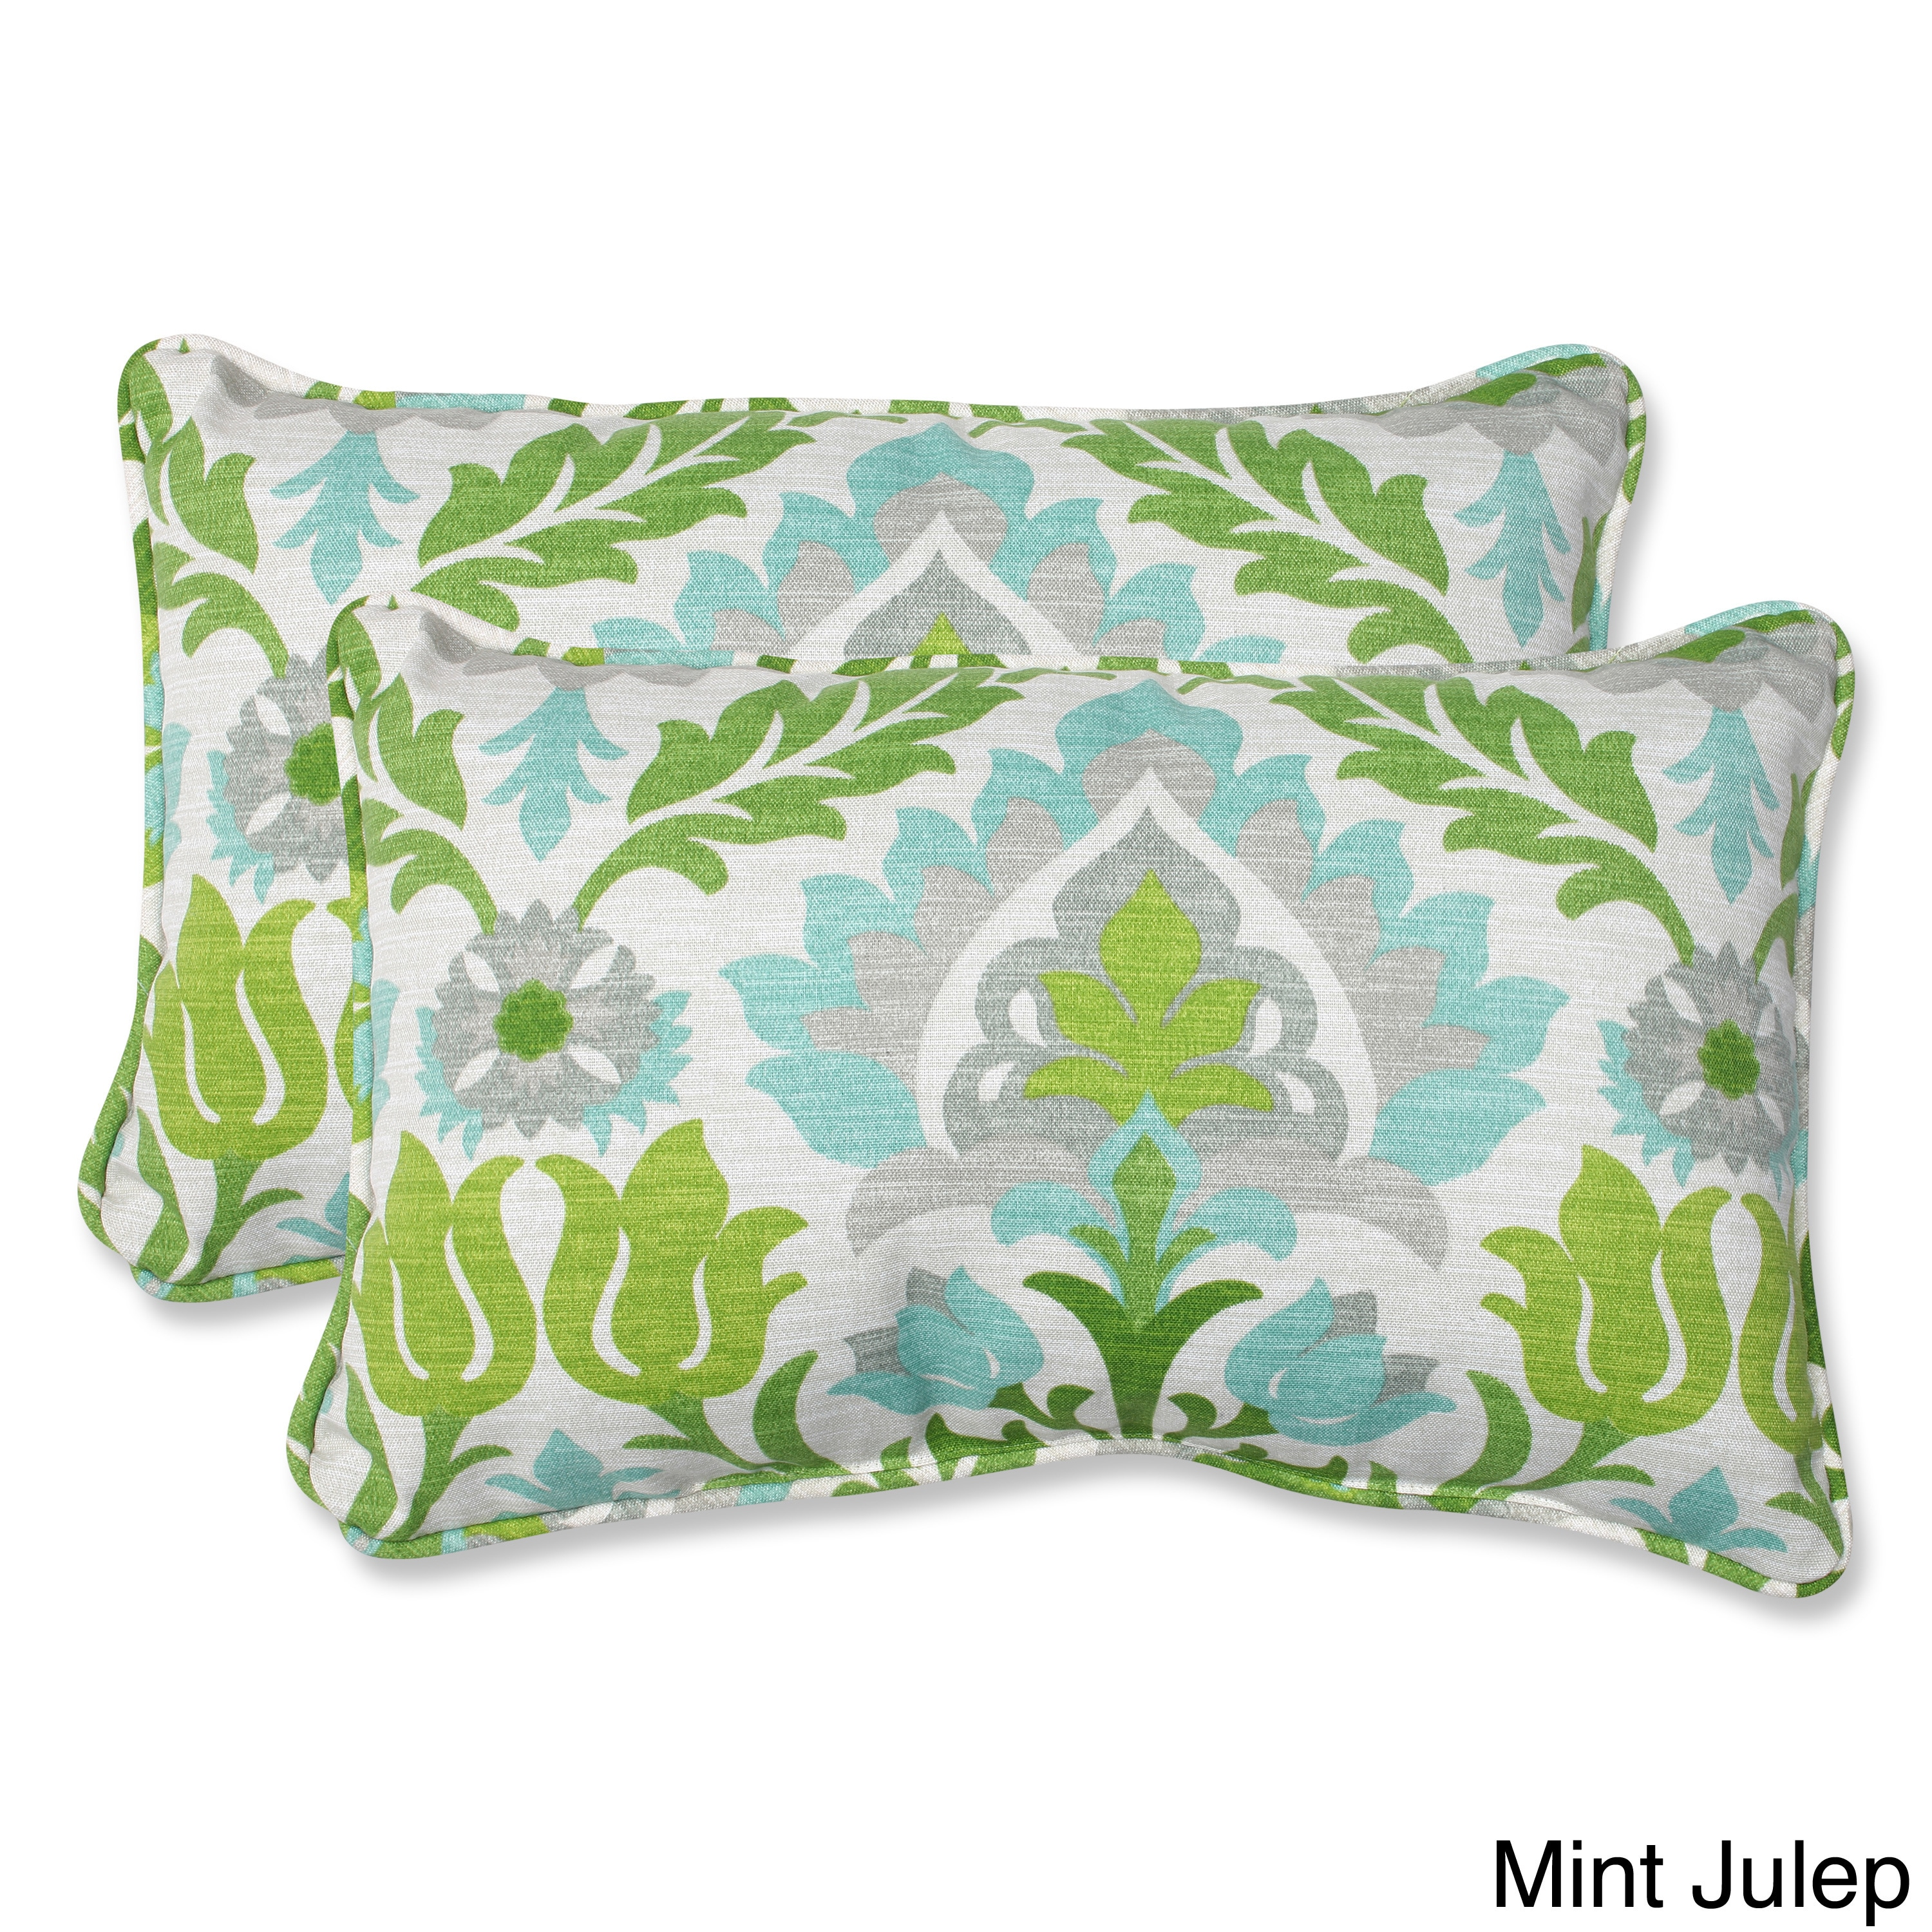 coral pillowcase of and full throw pillows mint seafoam velvet hunter green pillow size covers